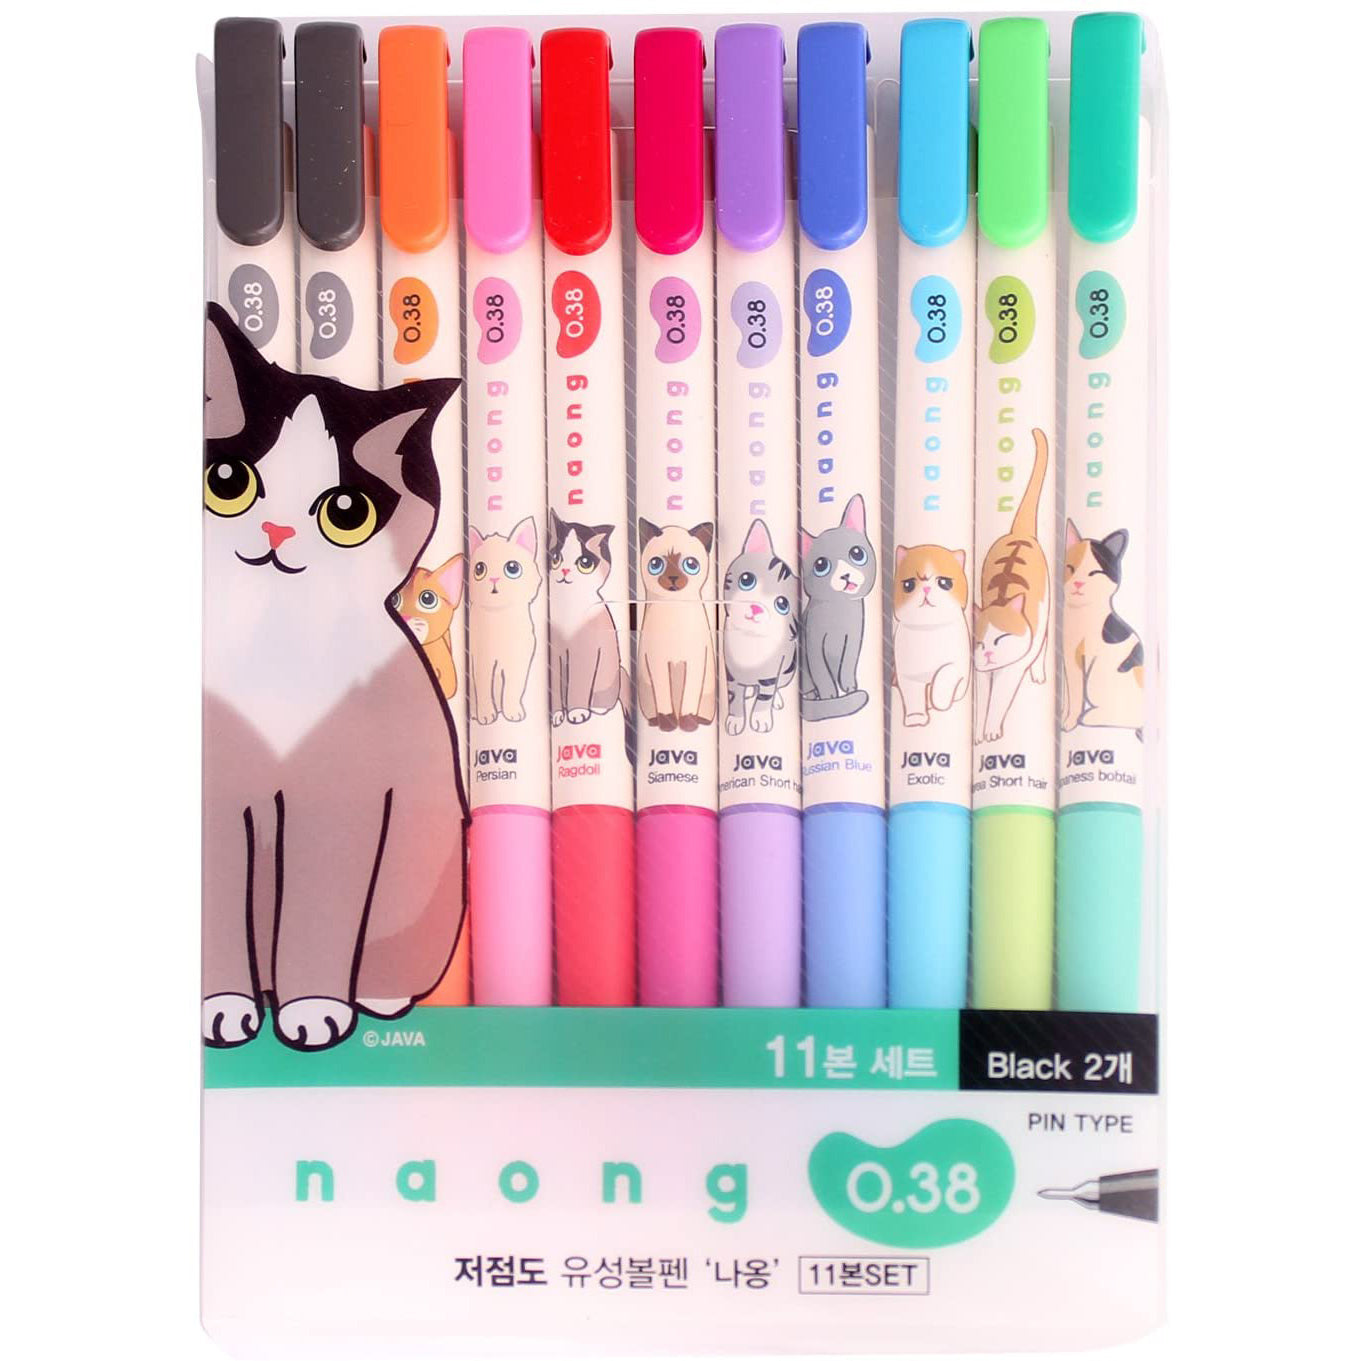 Naong 11-Set Ballpoint Pens, Multicolor 0.38mm